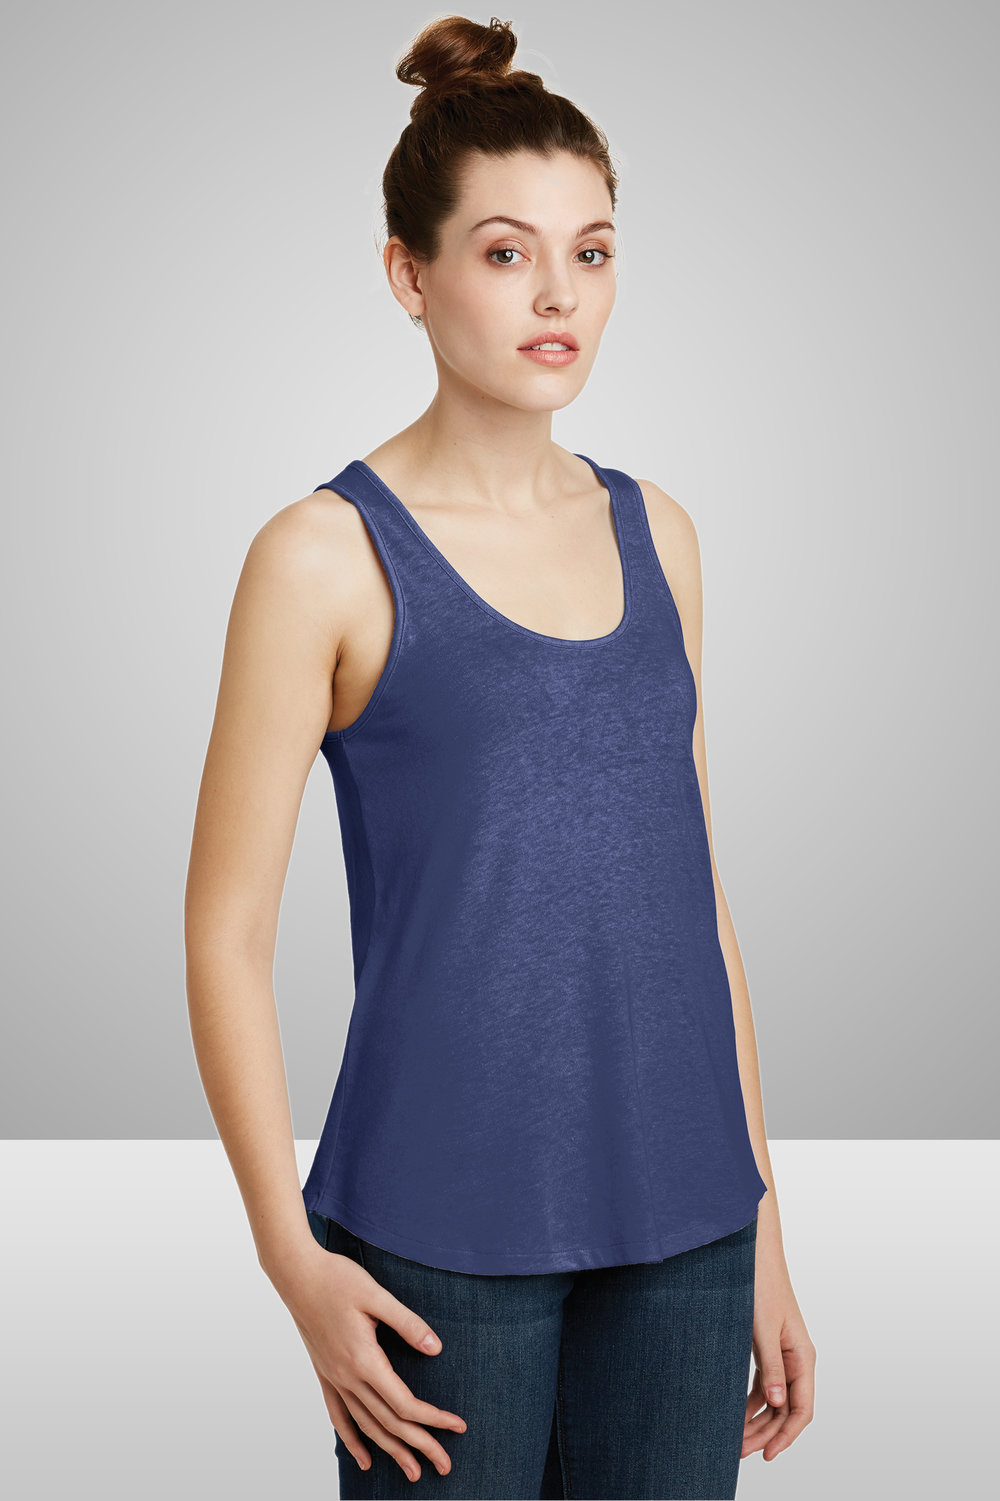 Alternative Ladies' Backstage Vintage Jersey Tank    $13.31 each for 25 items one color front or back